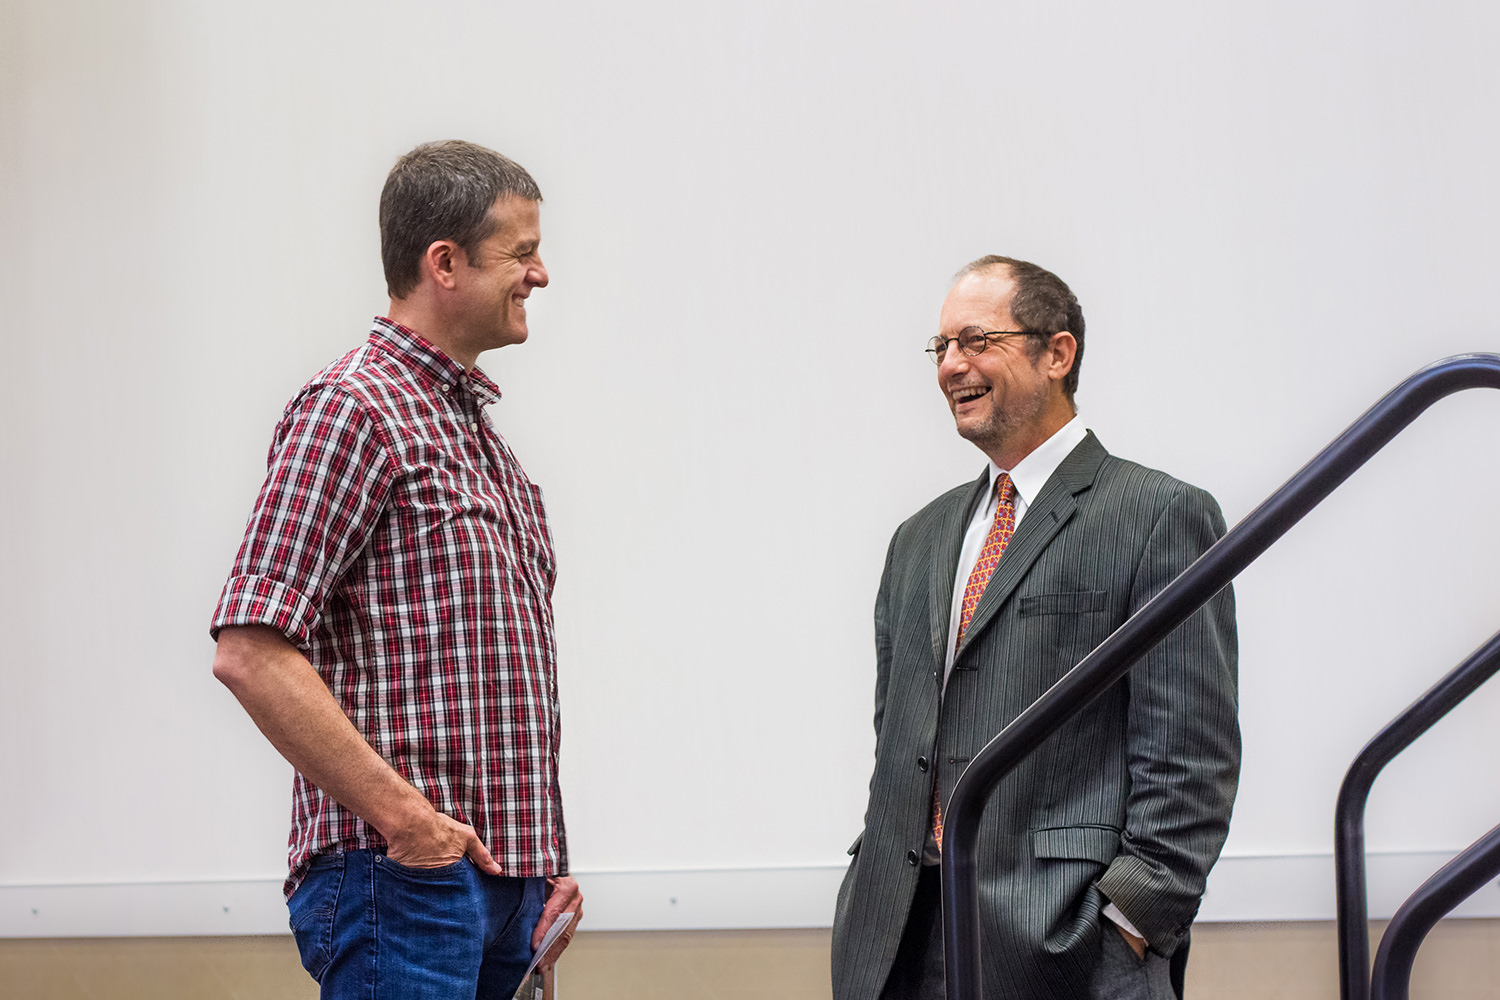 Mike Licona and Bart Ehrman Laughing